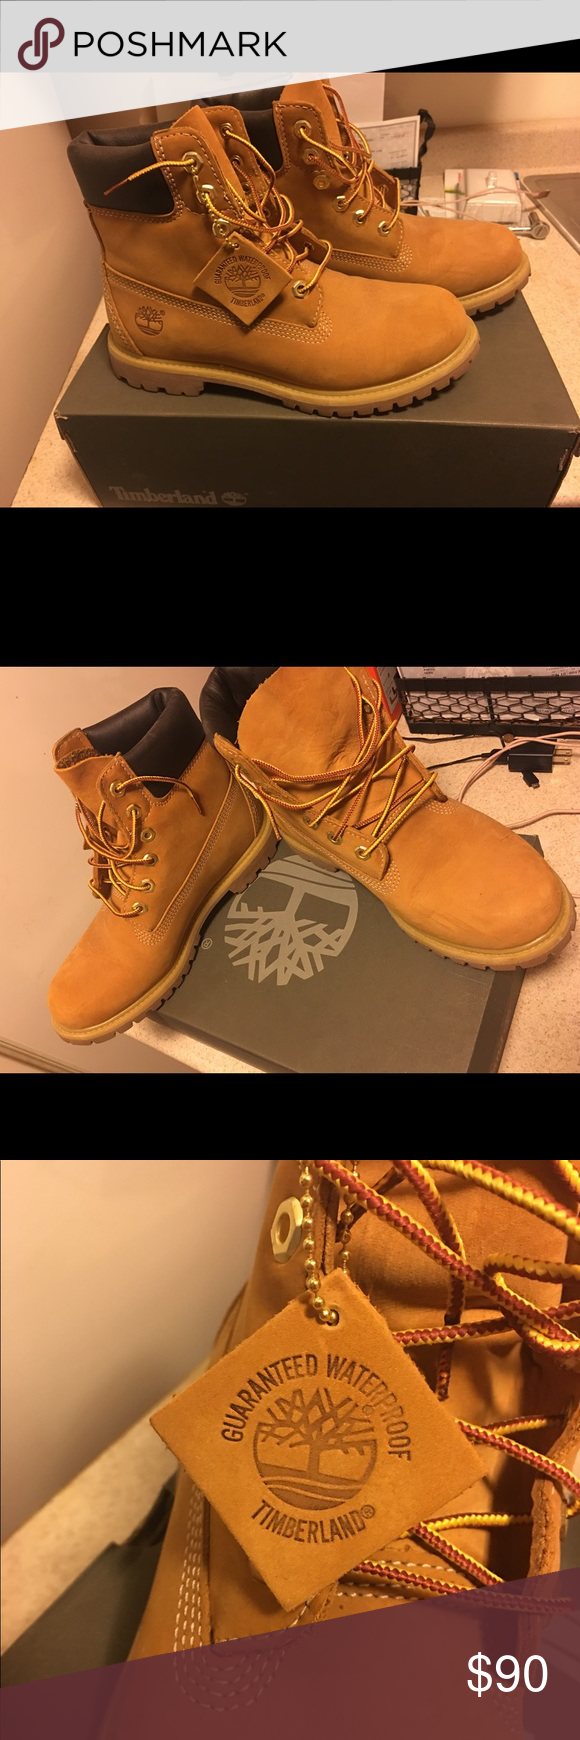 Timberland boots Traditional style Timberland boots. Worn a couple times but still in great shape! Timberland Shoes Combat & Moto Boots